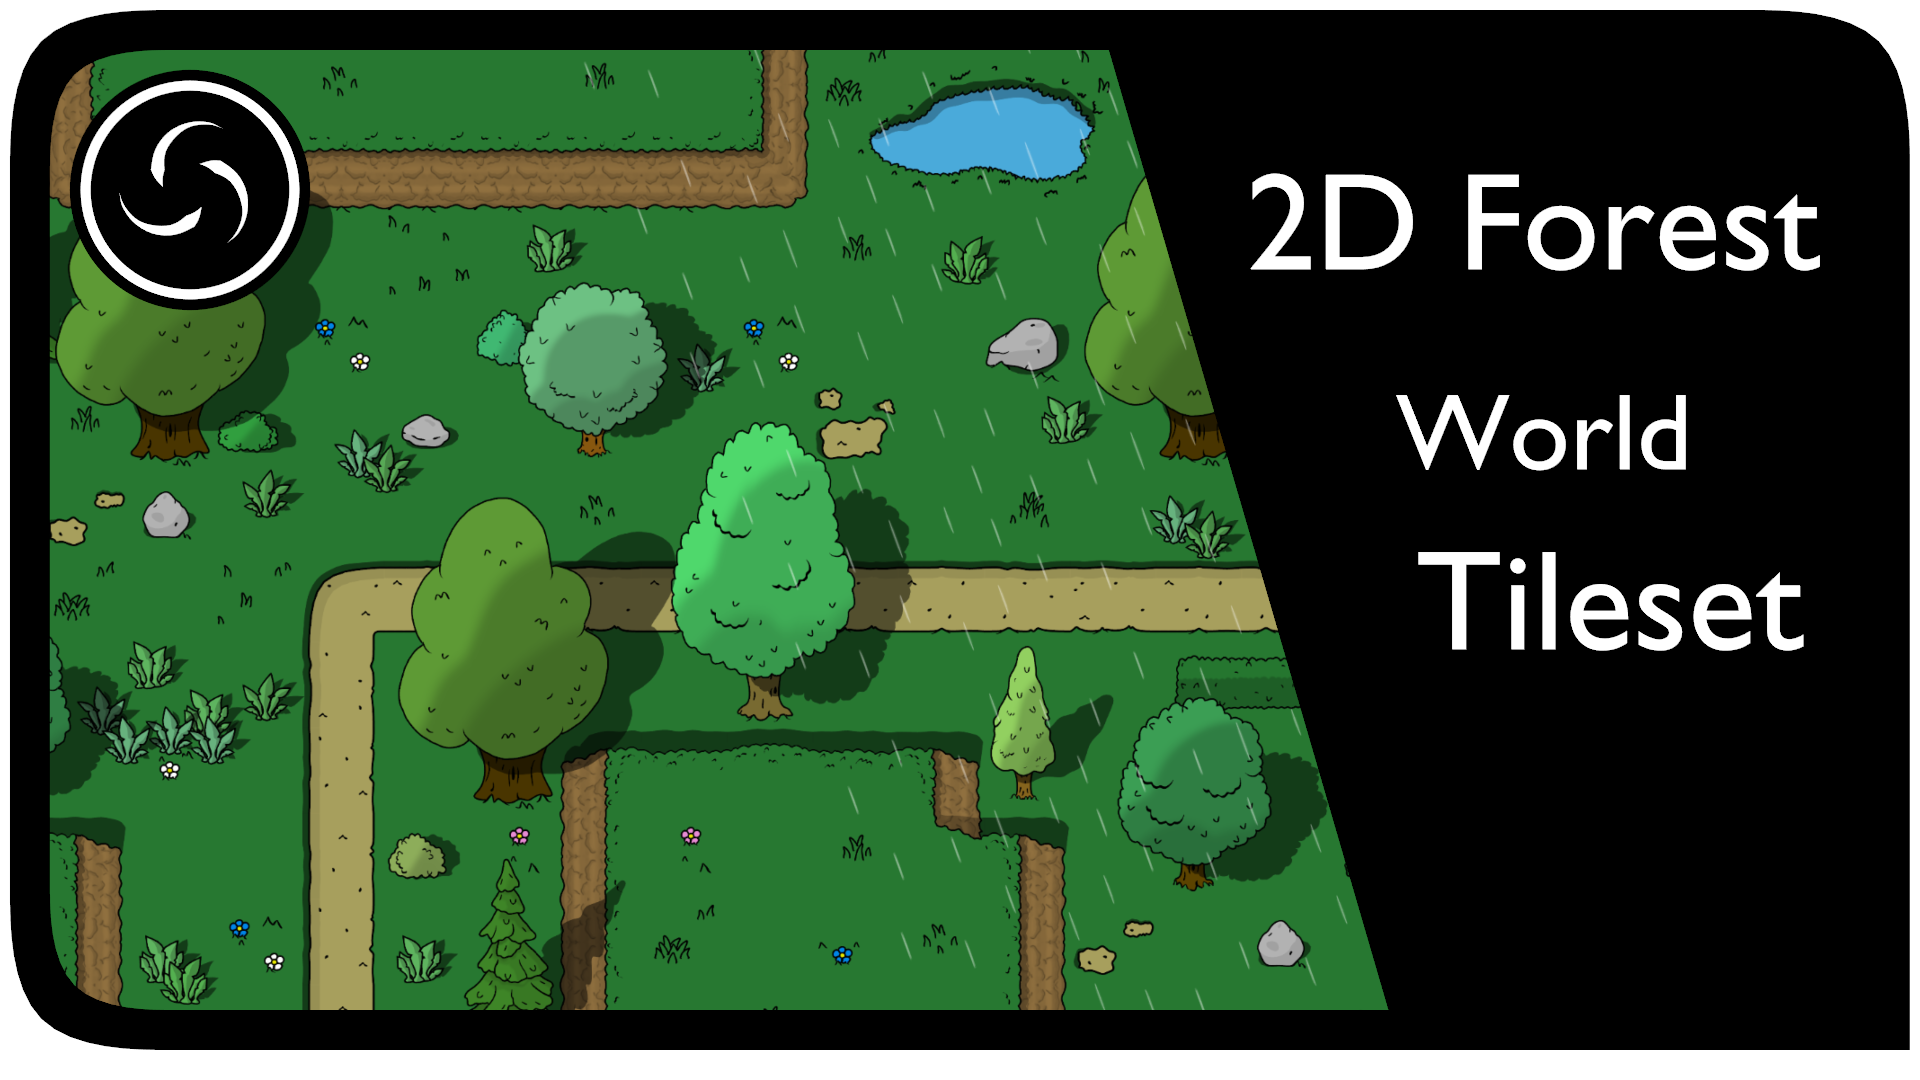 2D Forest World Tileset